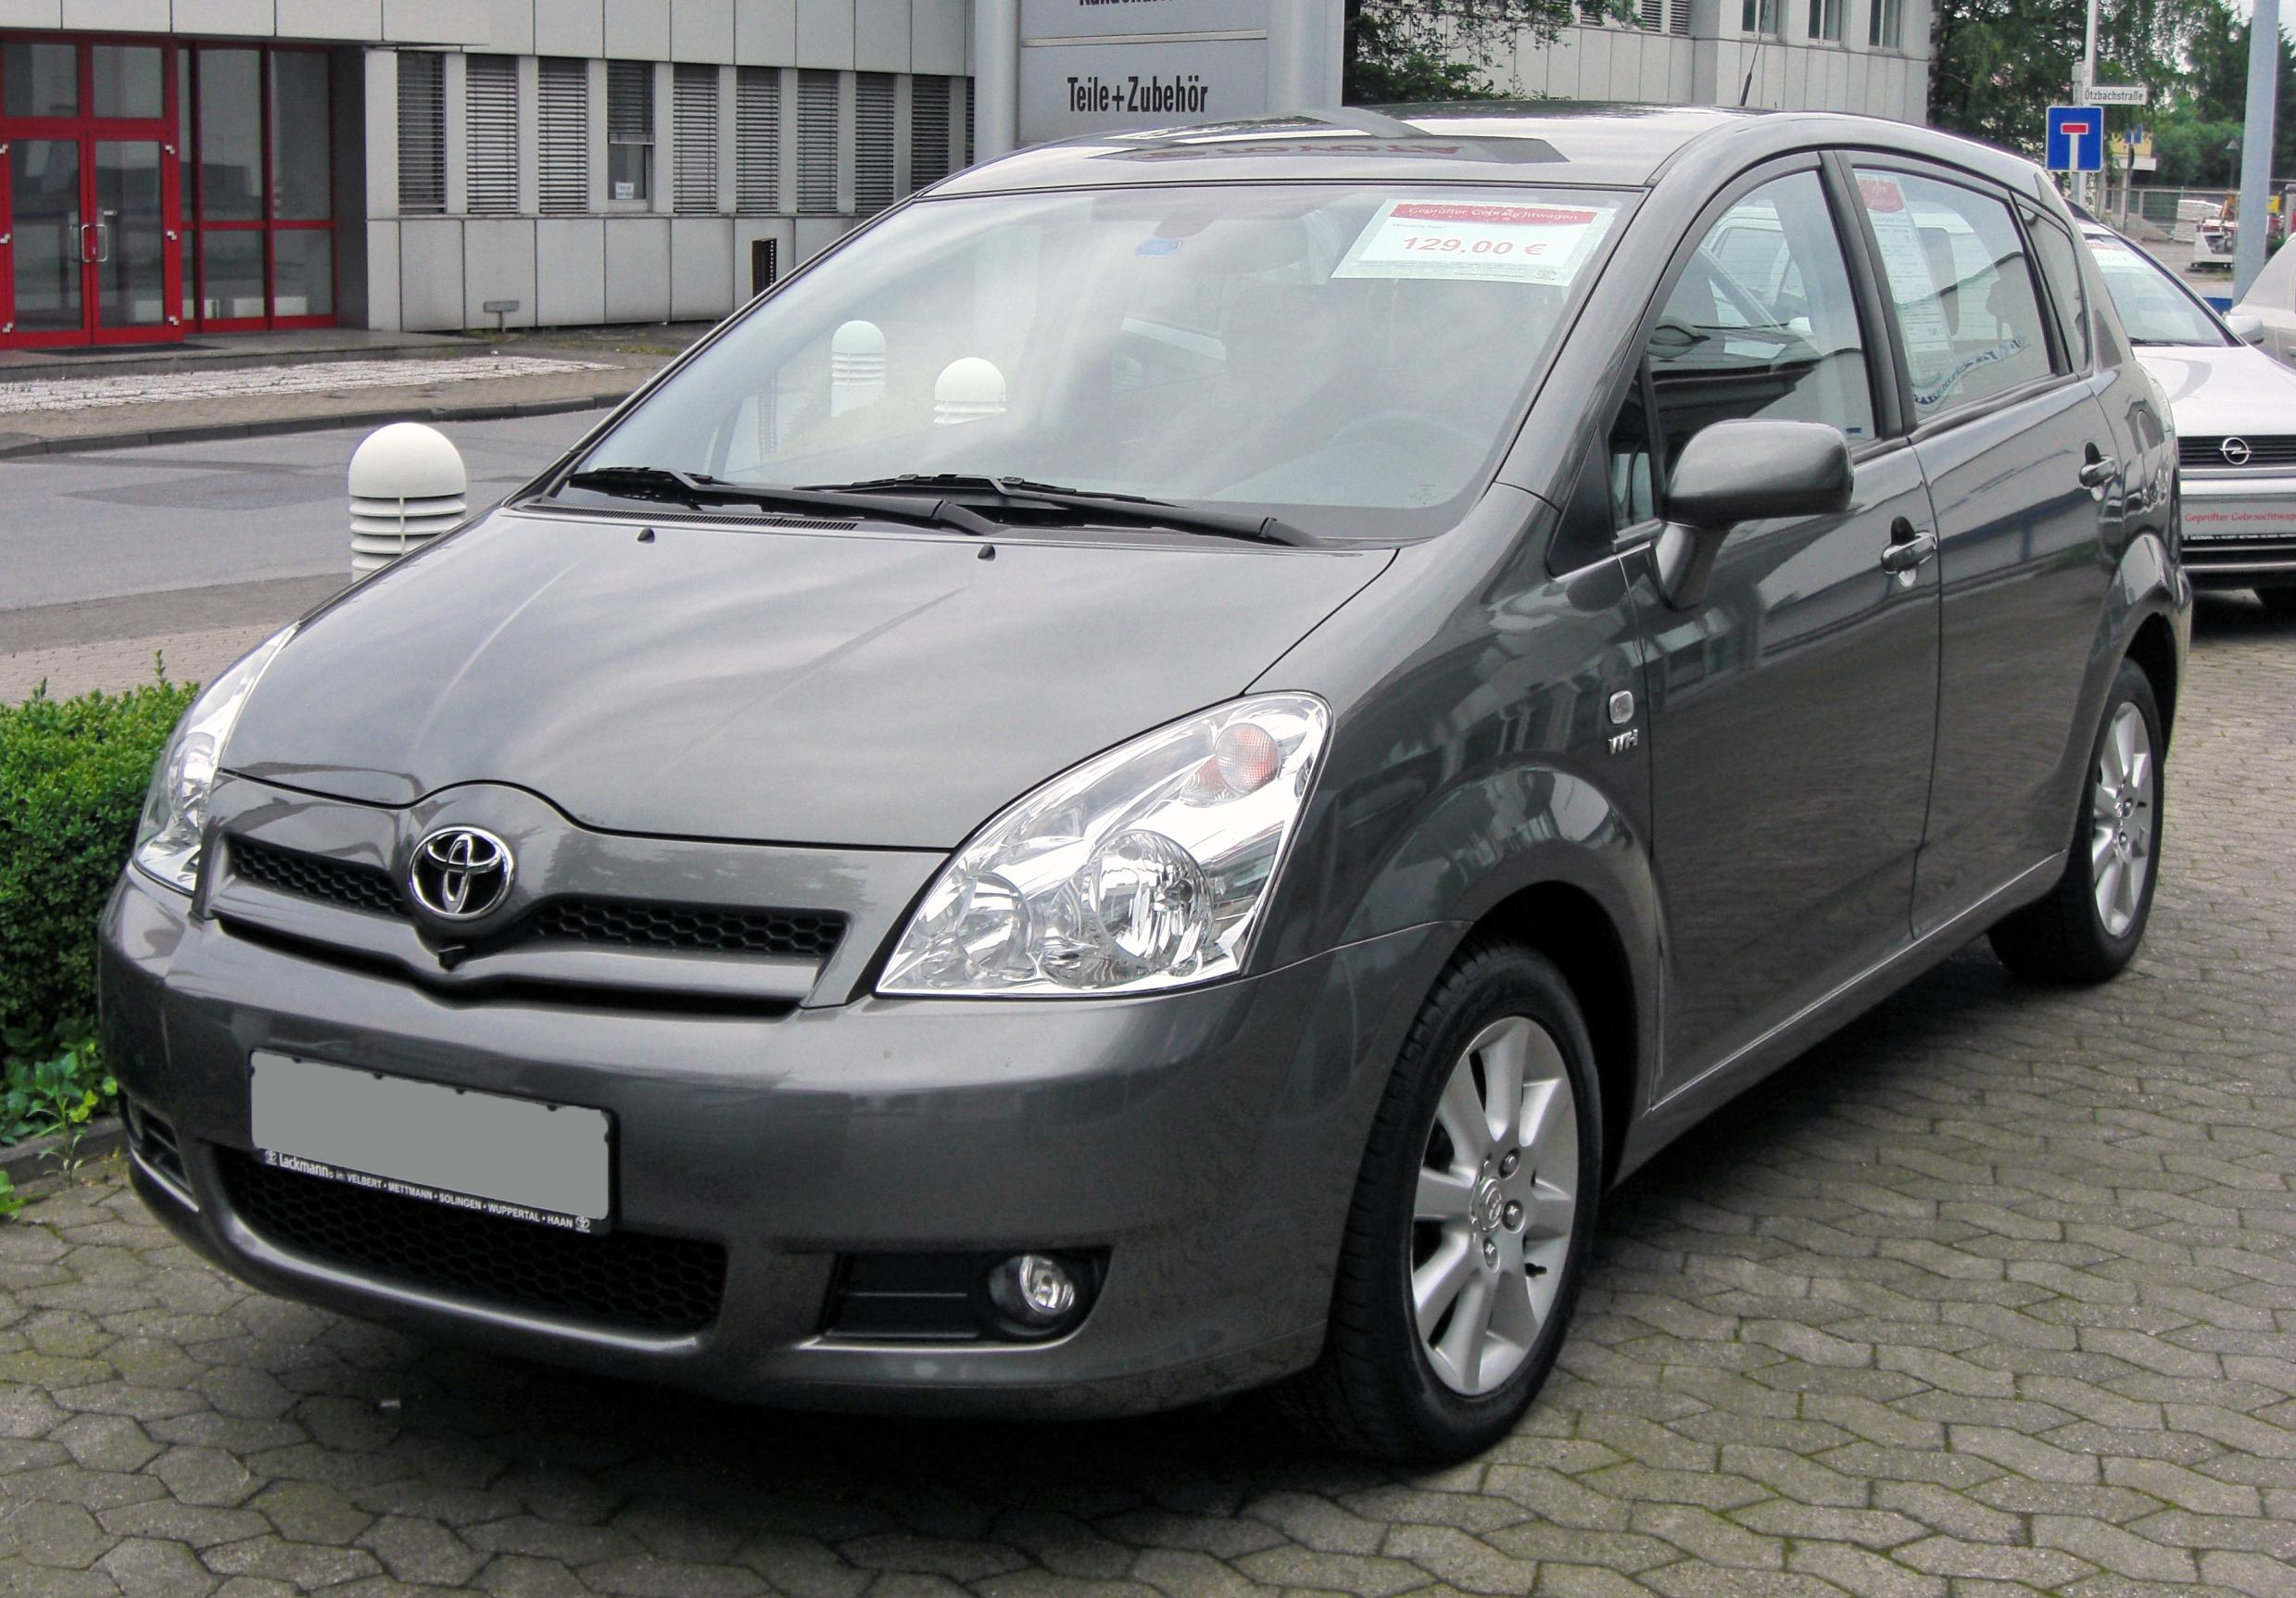 Description Toyota Corolla Verso II 20090620 front.JPG